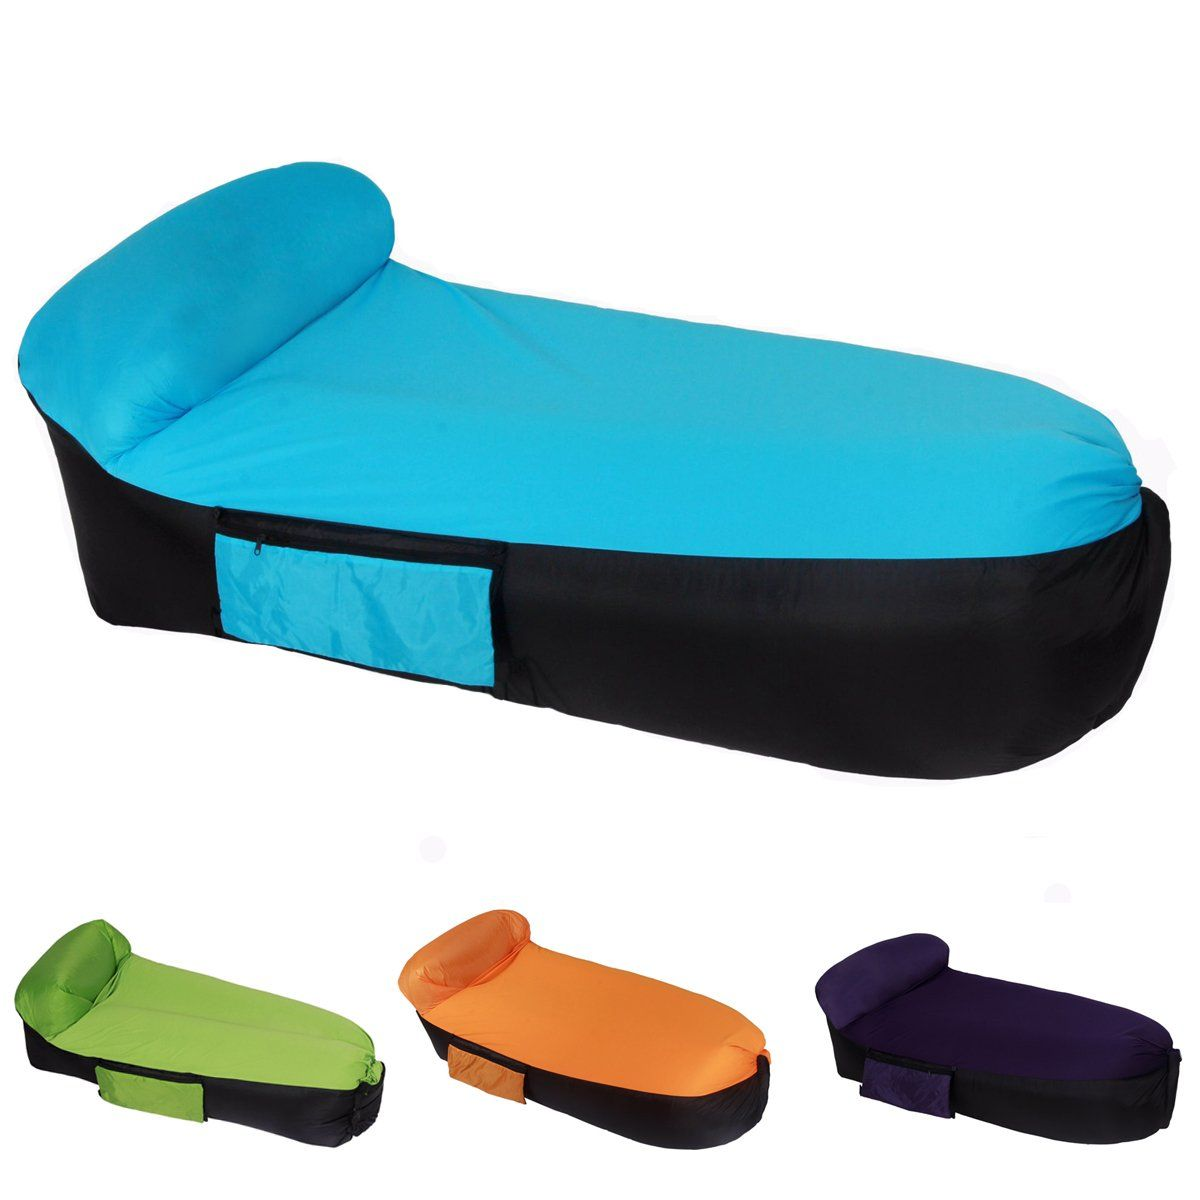 Vfdb Inflatable Lounger Air Sofa Vfbd Portable Air Lounge Hammock For Travellingcampinghiking F Inflatable Pool Inflatable Lounger Inflatable Swimming Pool